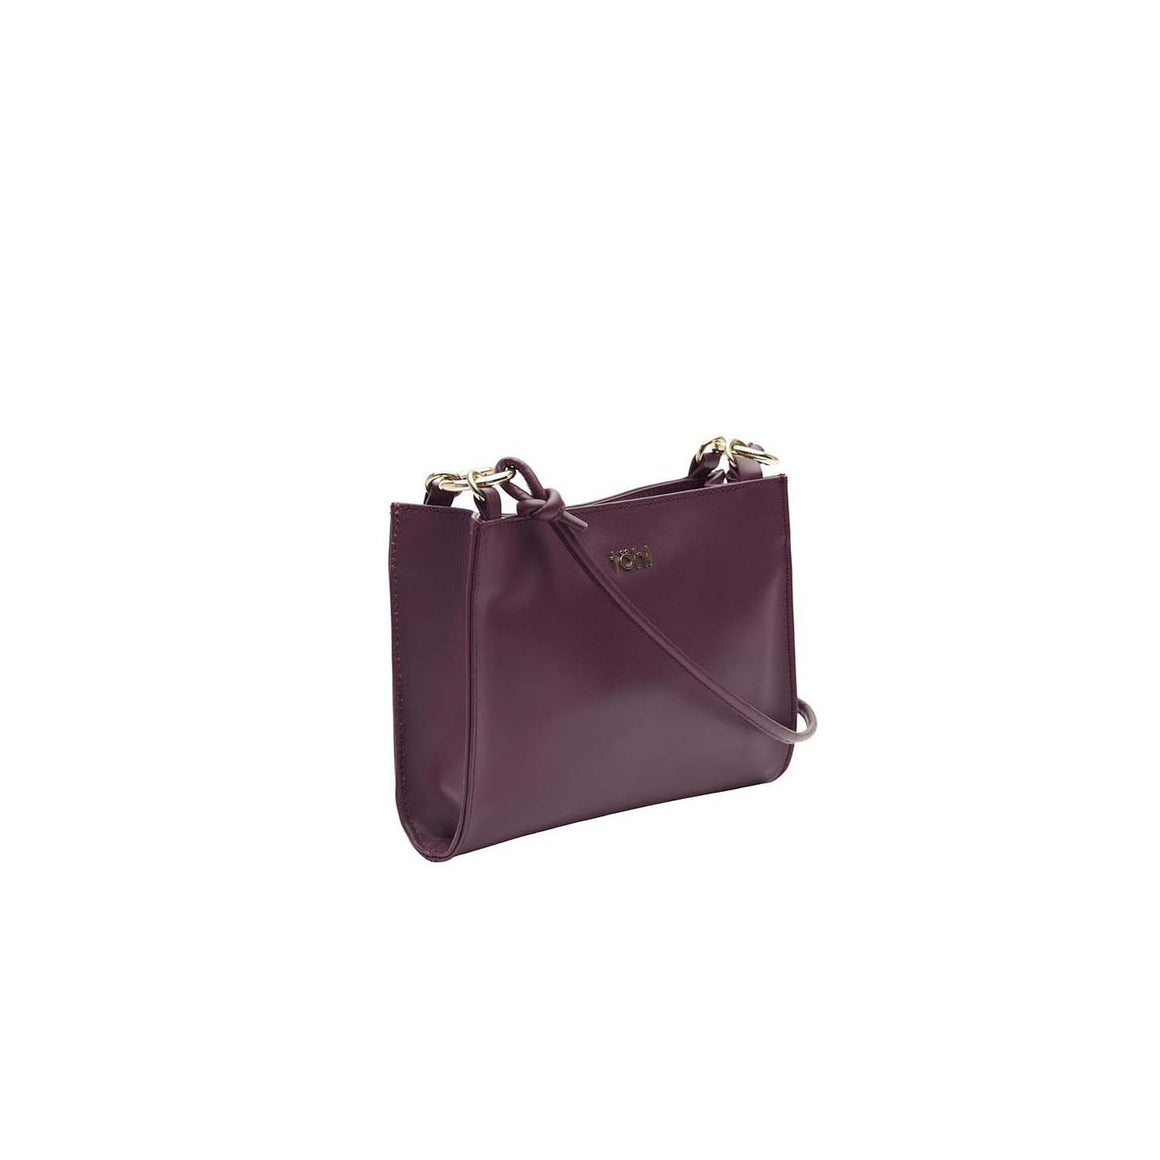 SG 0028 - TOHL BAYLIS WOMEN'S SLING & CROSSBODY BAG - BURGUNDY